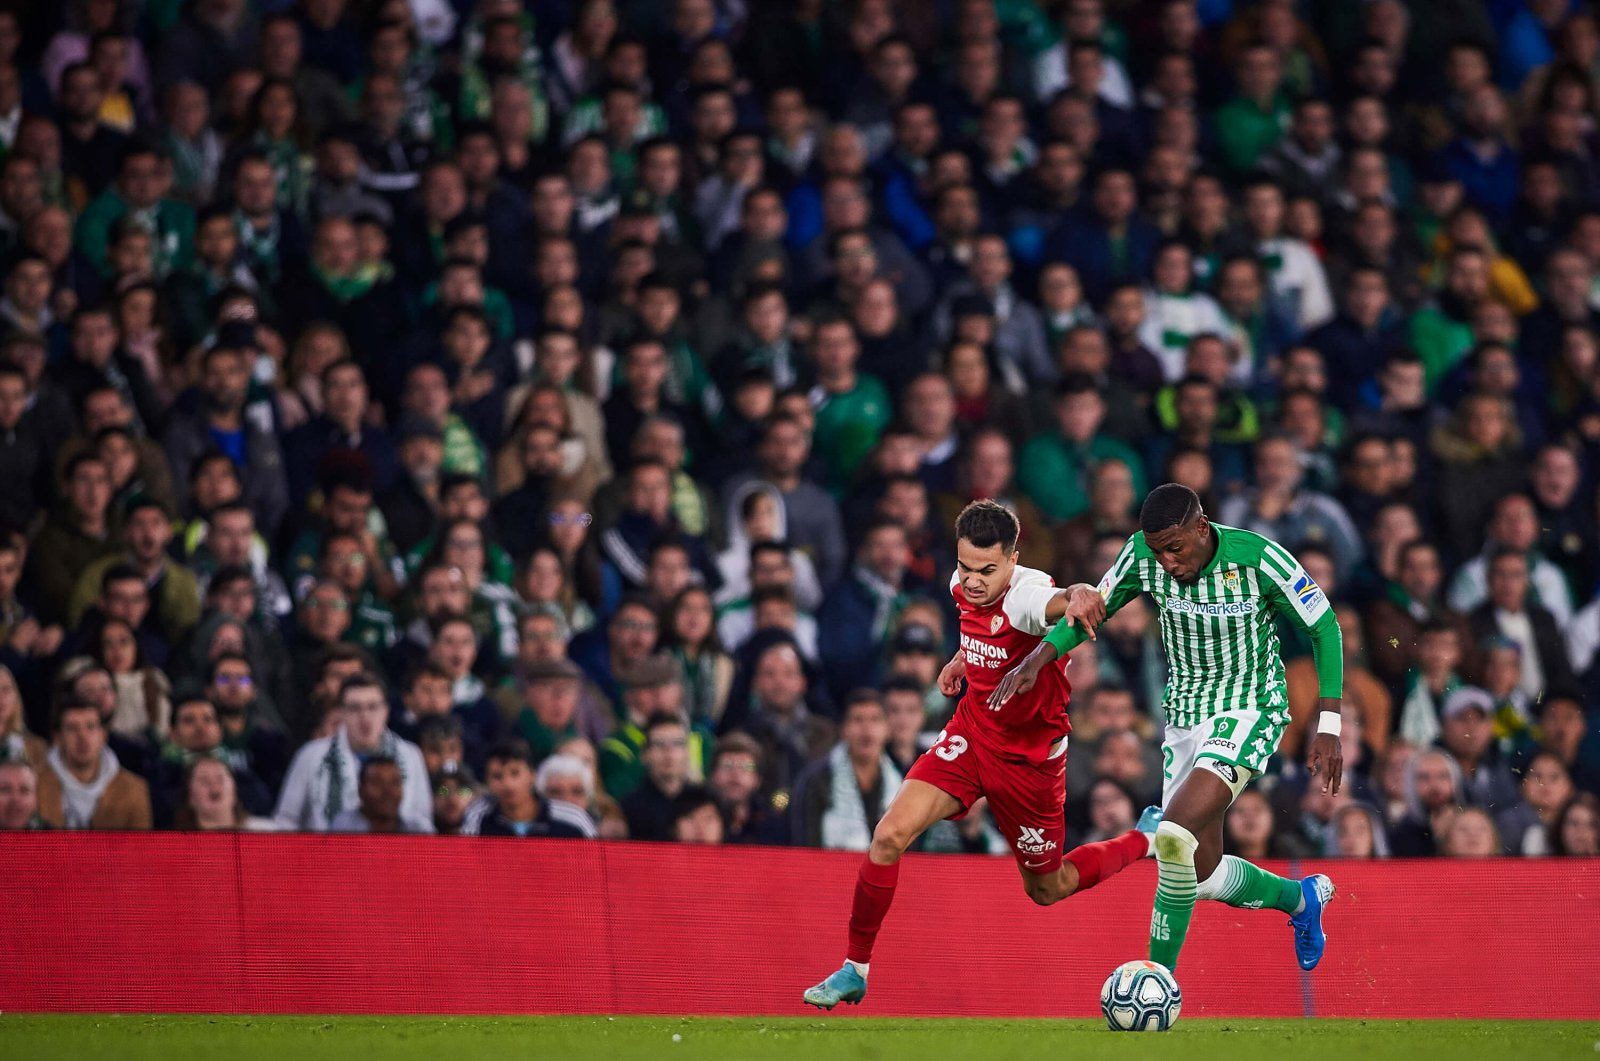 Real Betis' Emerson competes for the ball with Sevilla's Sergio Reguilon Rodriguez during a La Liga match in Seville, Spain, Nov. 10, 2019. (Photo by Quality Sport Images/Getty Images)